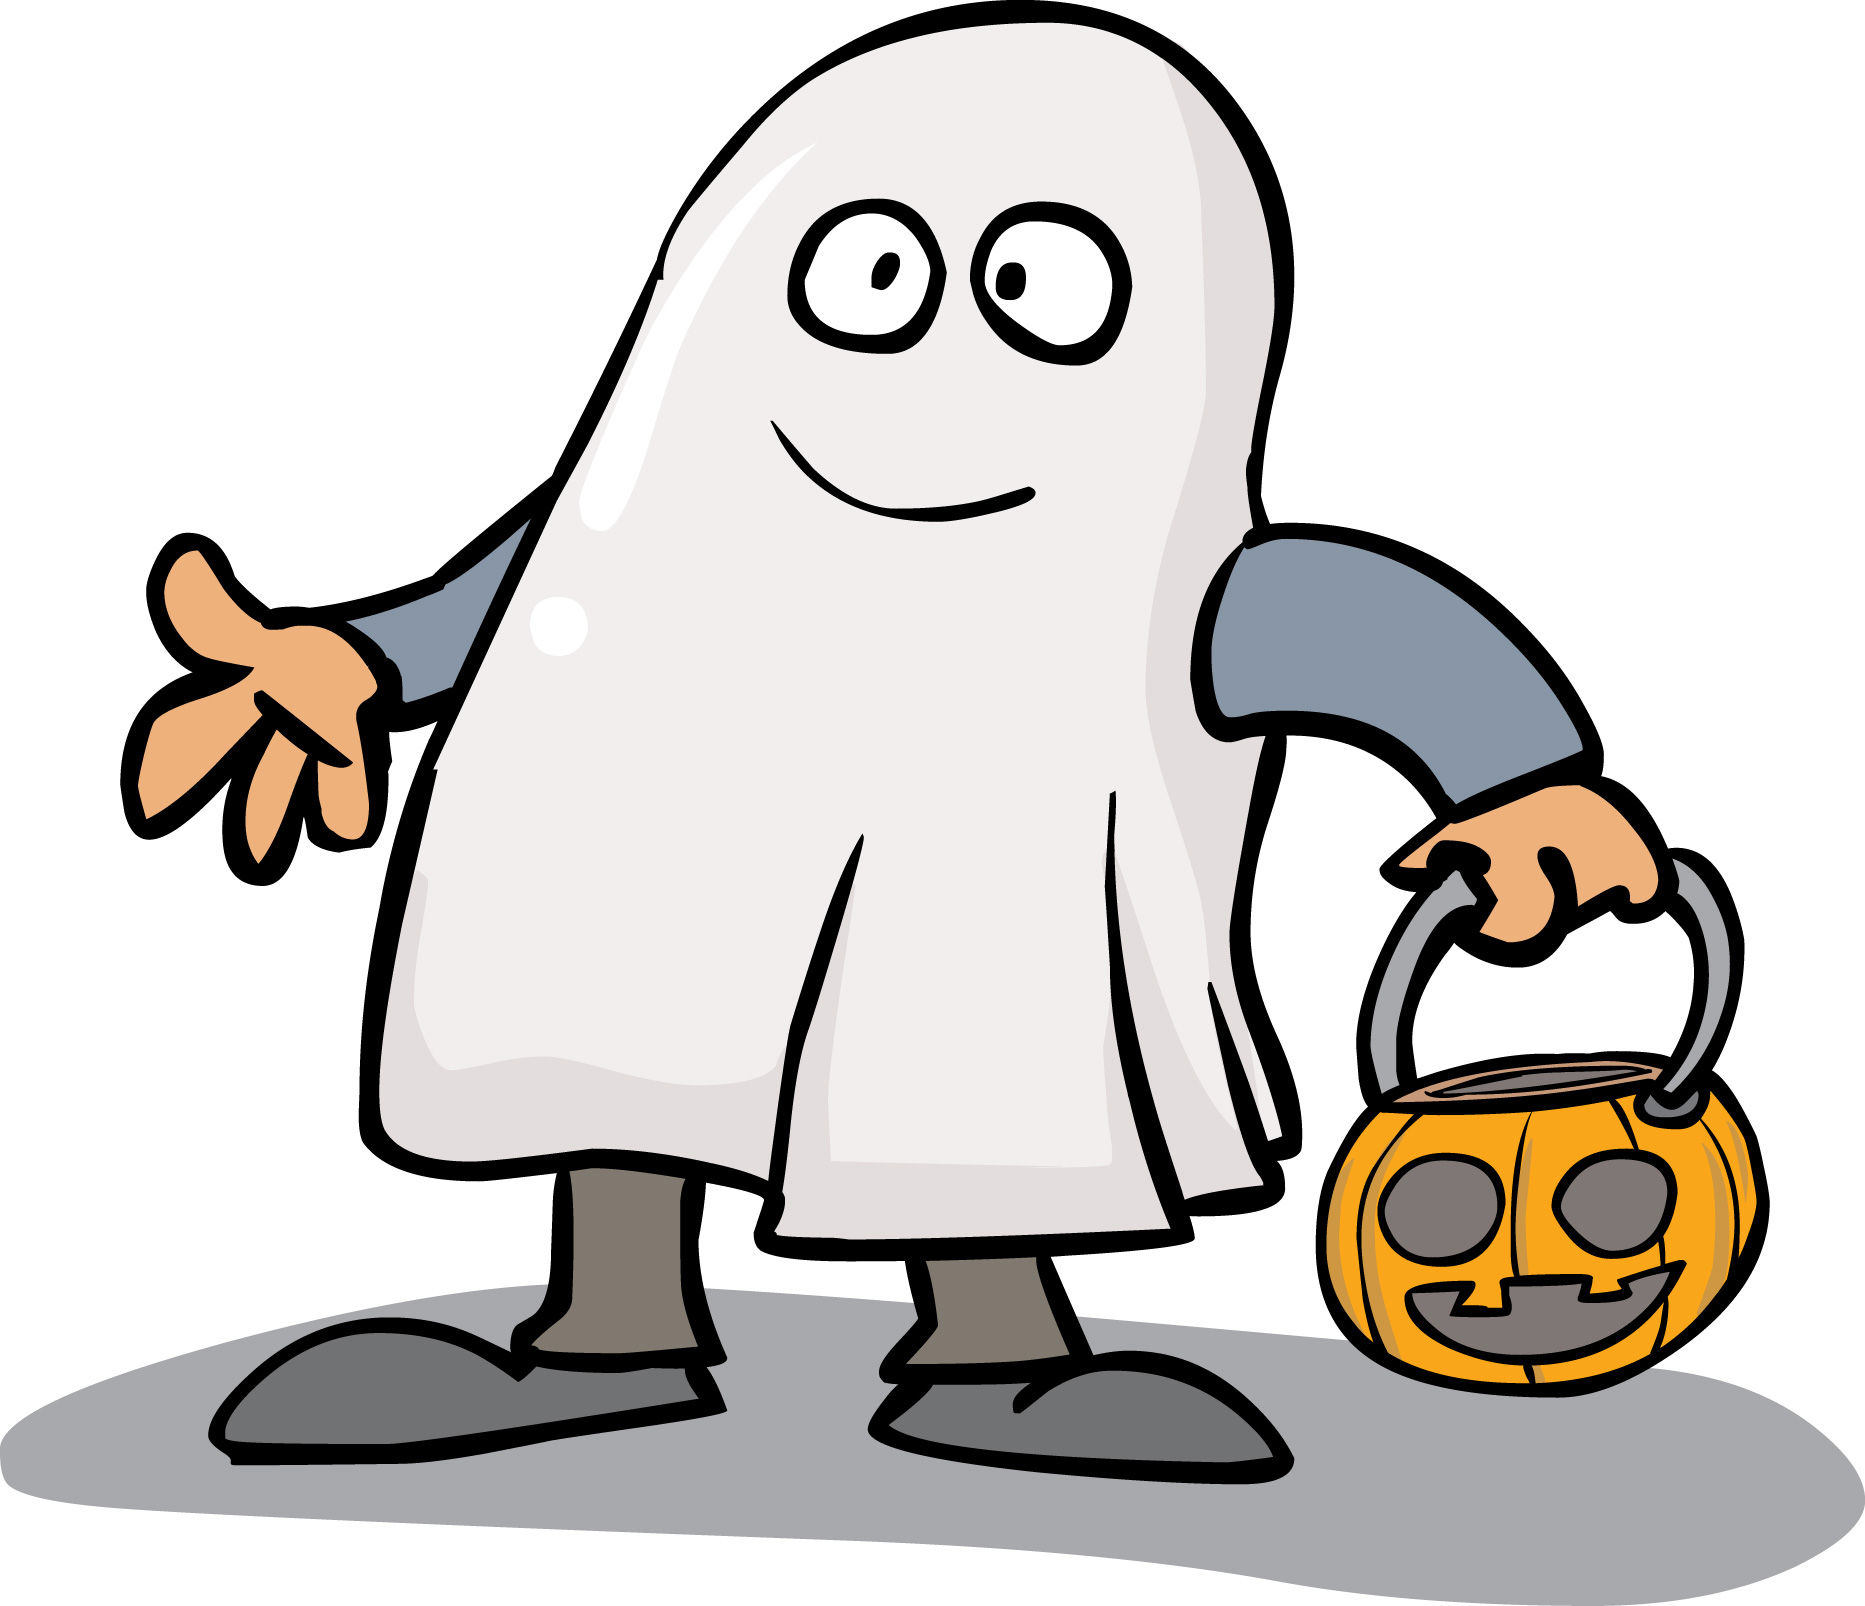 Cute Halloween Ghost Clipart   Free download on ClipArtMag (1865 x 1606 Pixel)